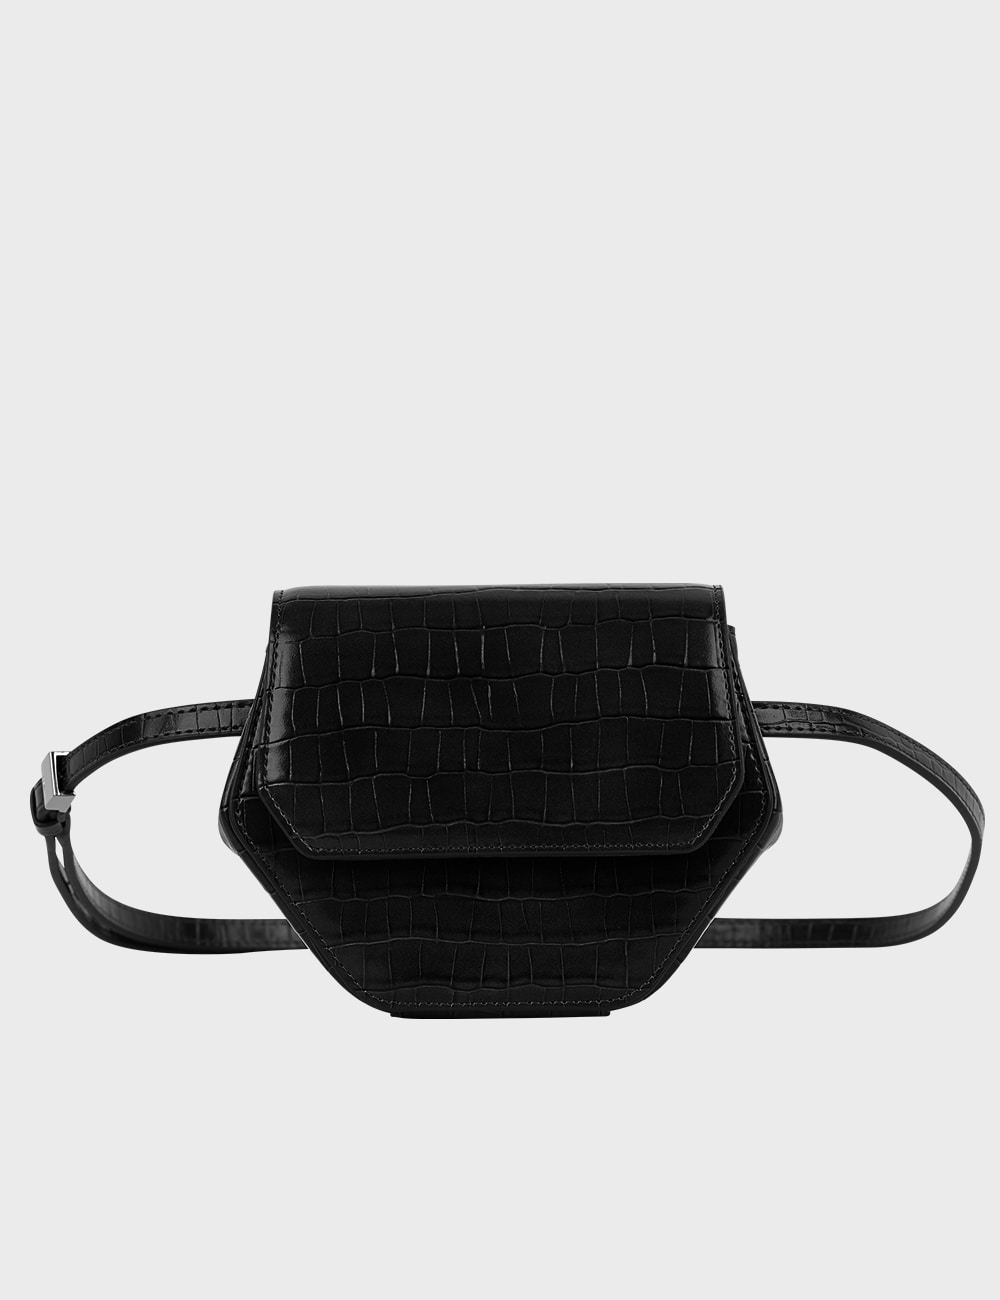 MAISON246,[메탈체인증정] 246 MAGOT SMALL CROCODILE PENNY BAG - BLACK,246